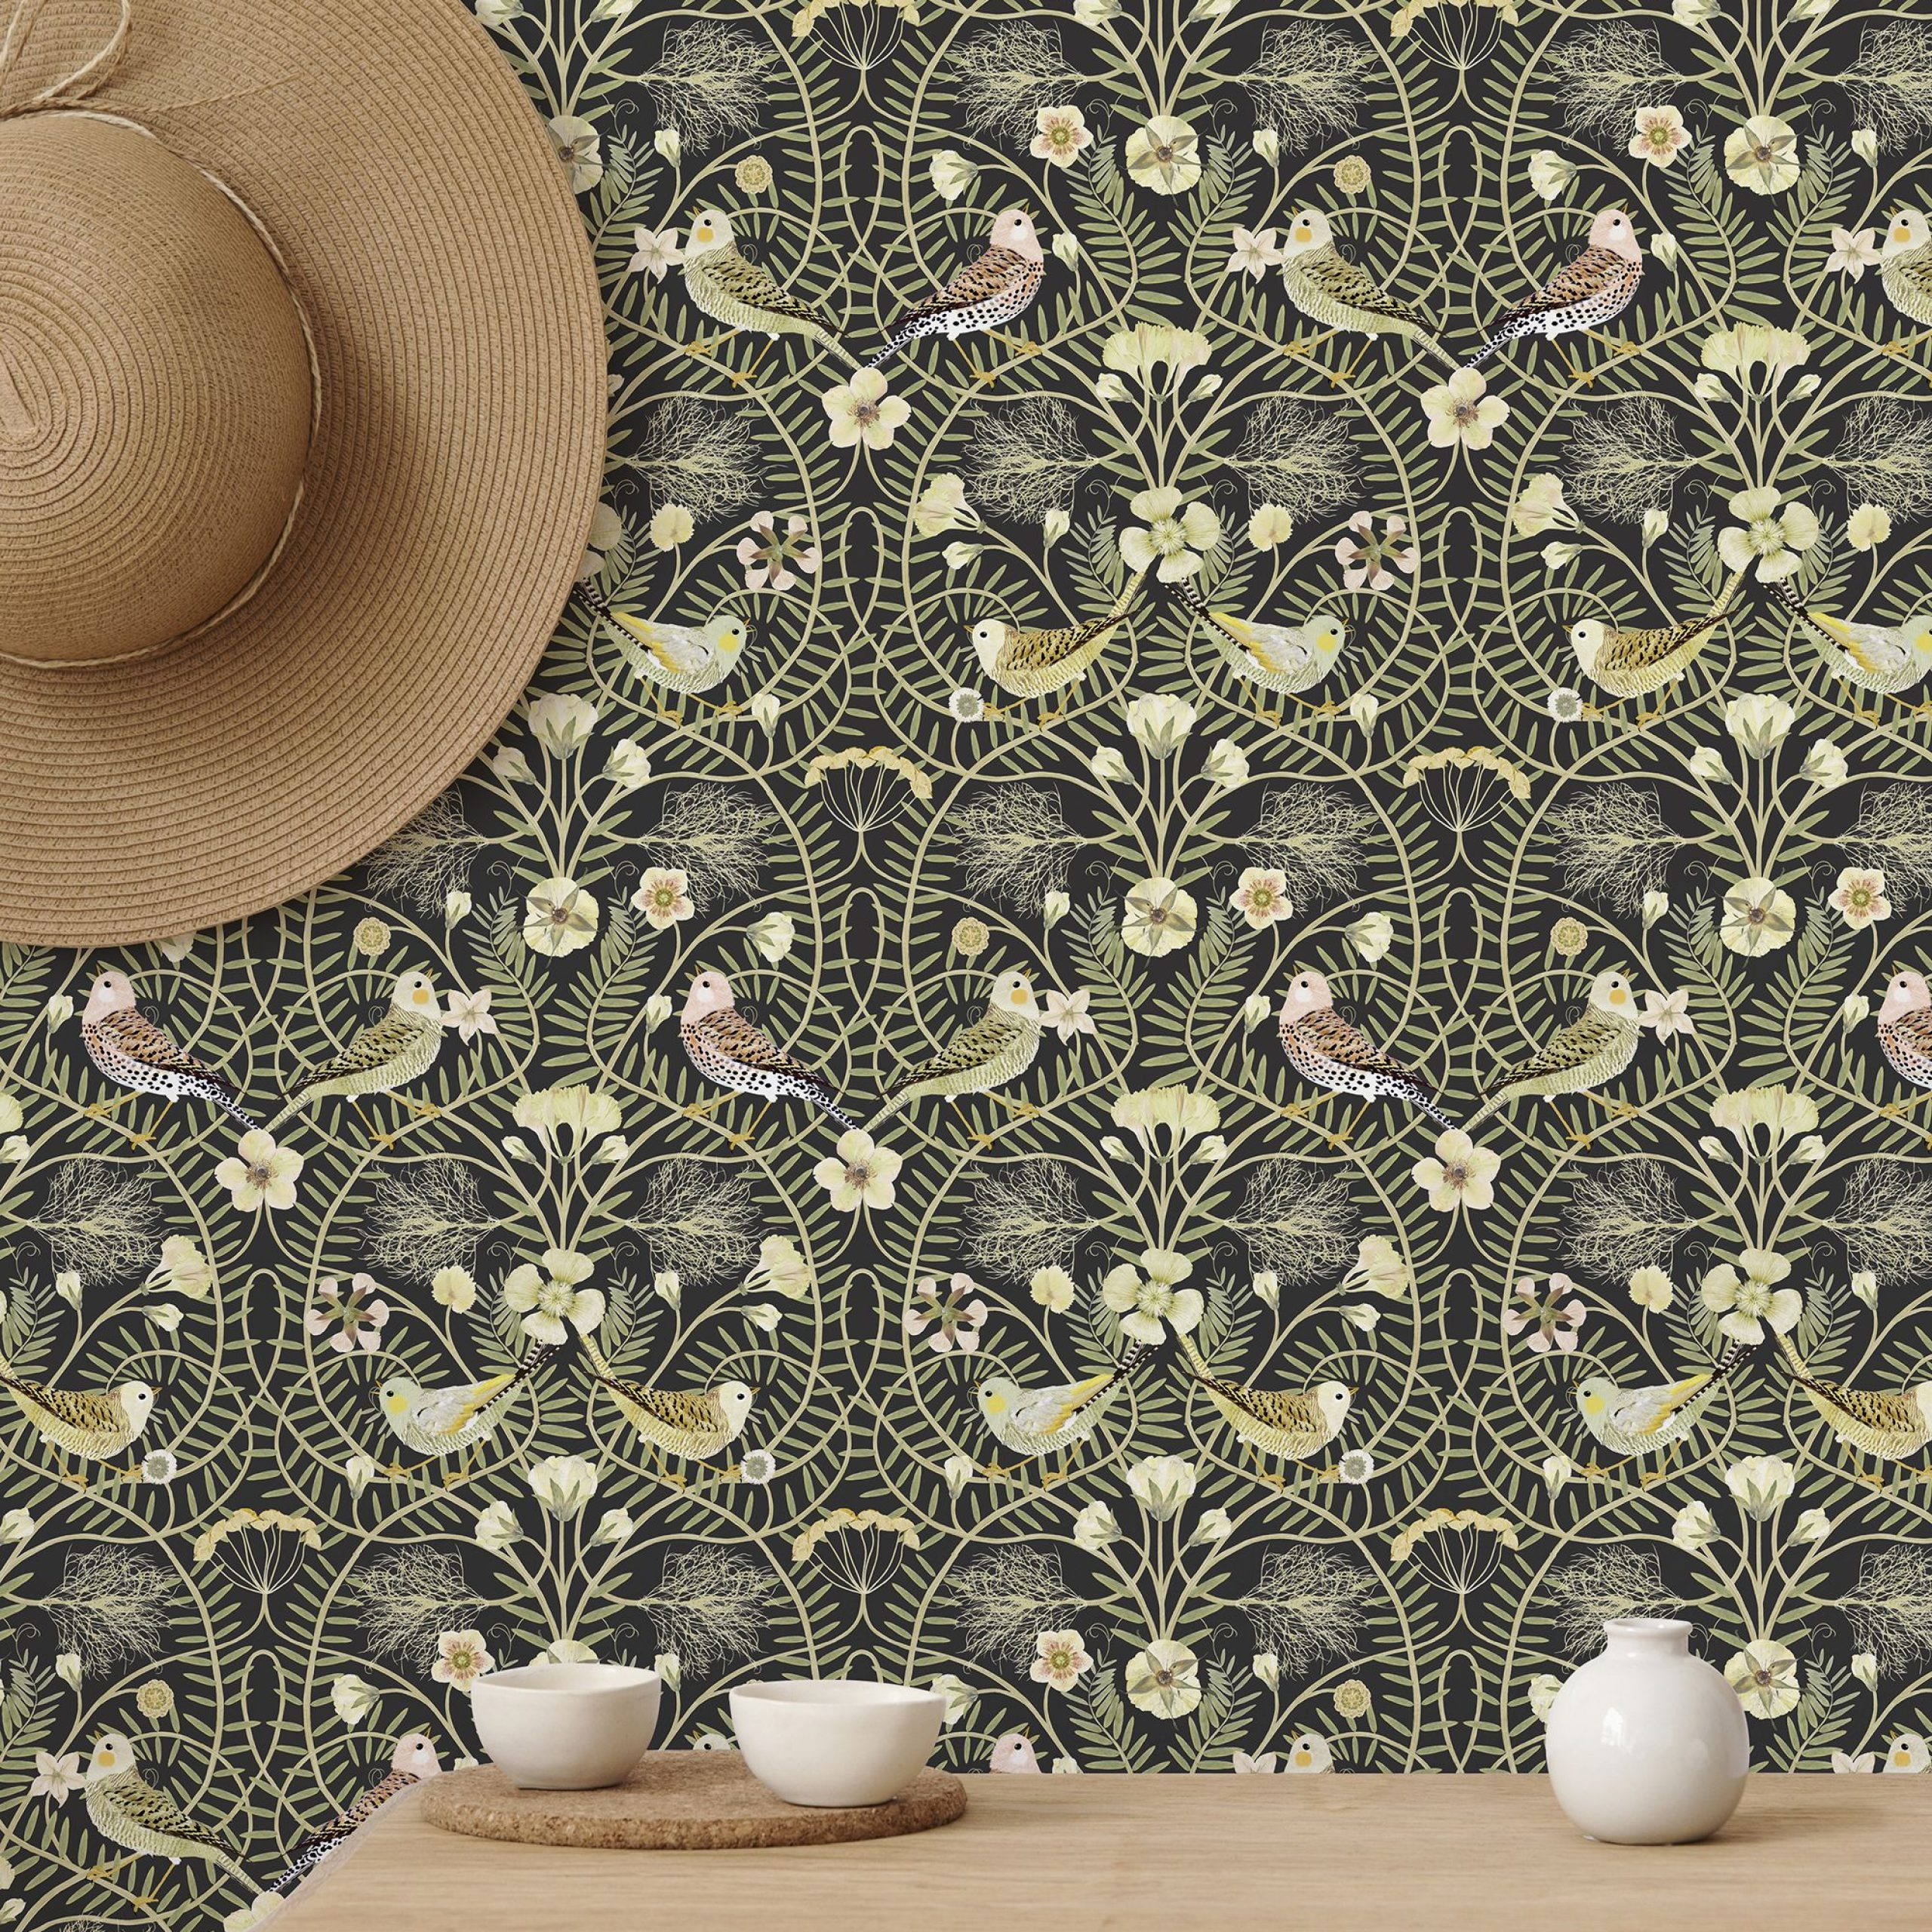 Birds Nest – Black – High Quality Personalised Wallpaper Intended For Most Recent Blended Fabric Ethereal Days Chinoiserie Wall Hangings With Rod (View 18 of 20)